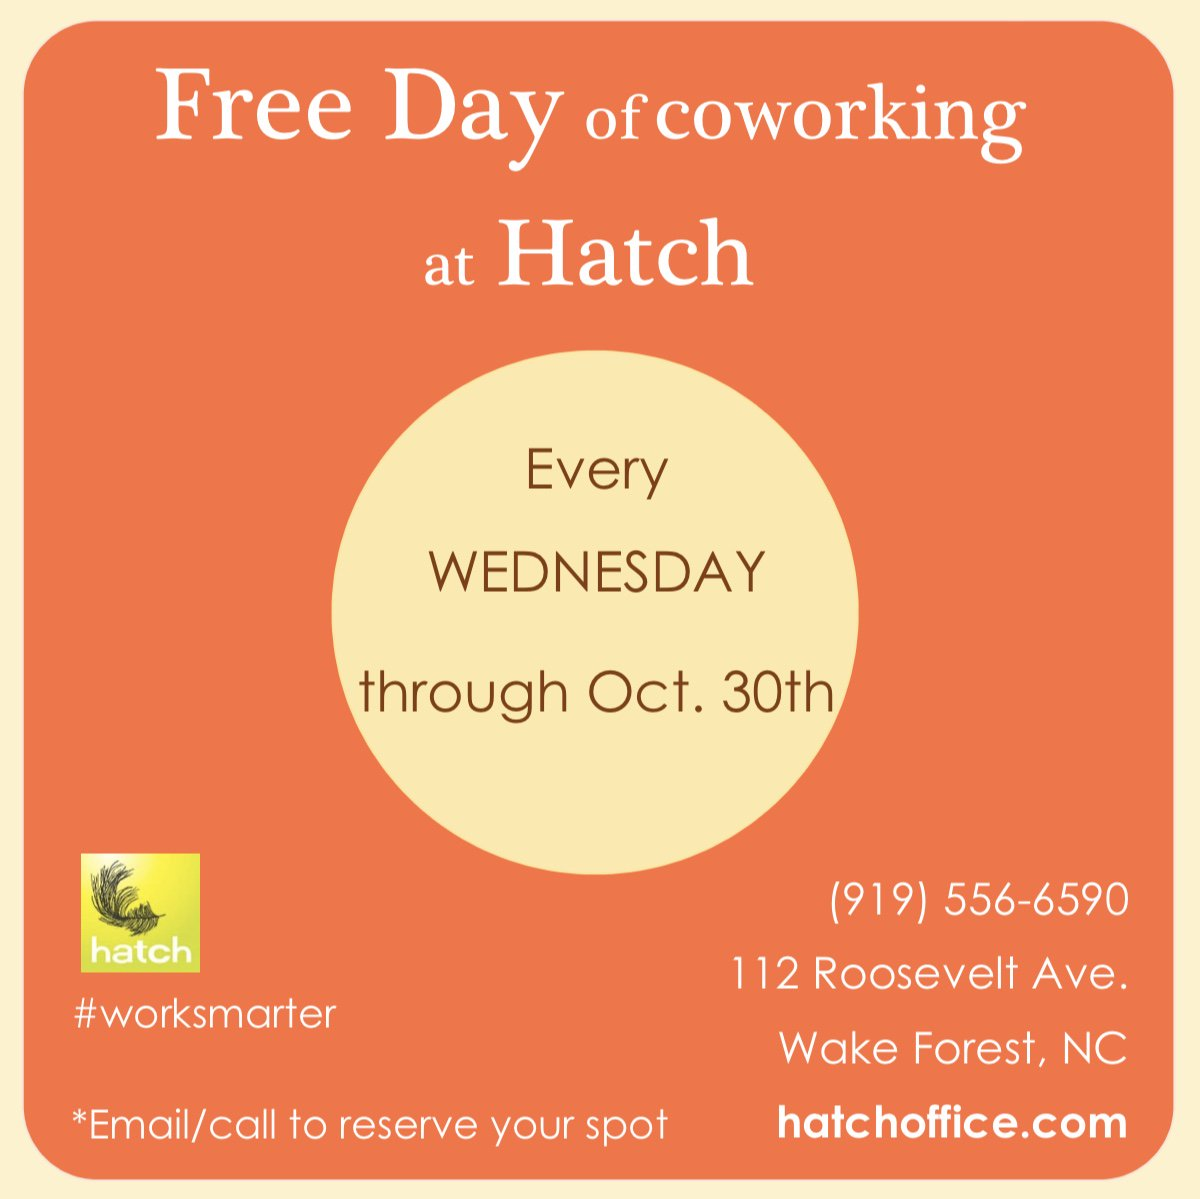 Join us this Wednesday for a day of FREE COWORKING  -- Email or call ahead to reserve your spot-- (919)556-6590 - 112 Roosevelt Ave. Wake Forest, NC -  http:// hatchoffice.com     - #hatch #lovewhereyouwork #worksmarter<br>http://pic.twitter.com/c6nZn0EXwT